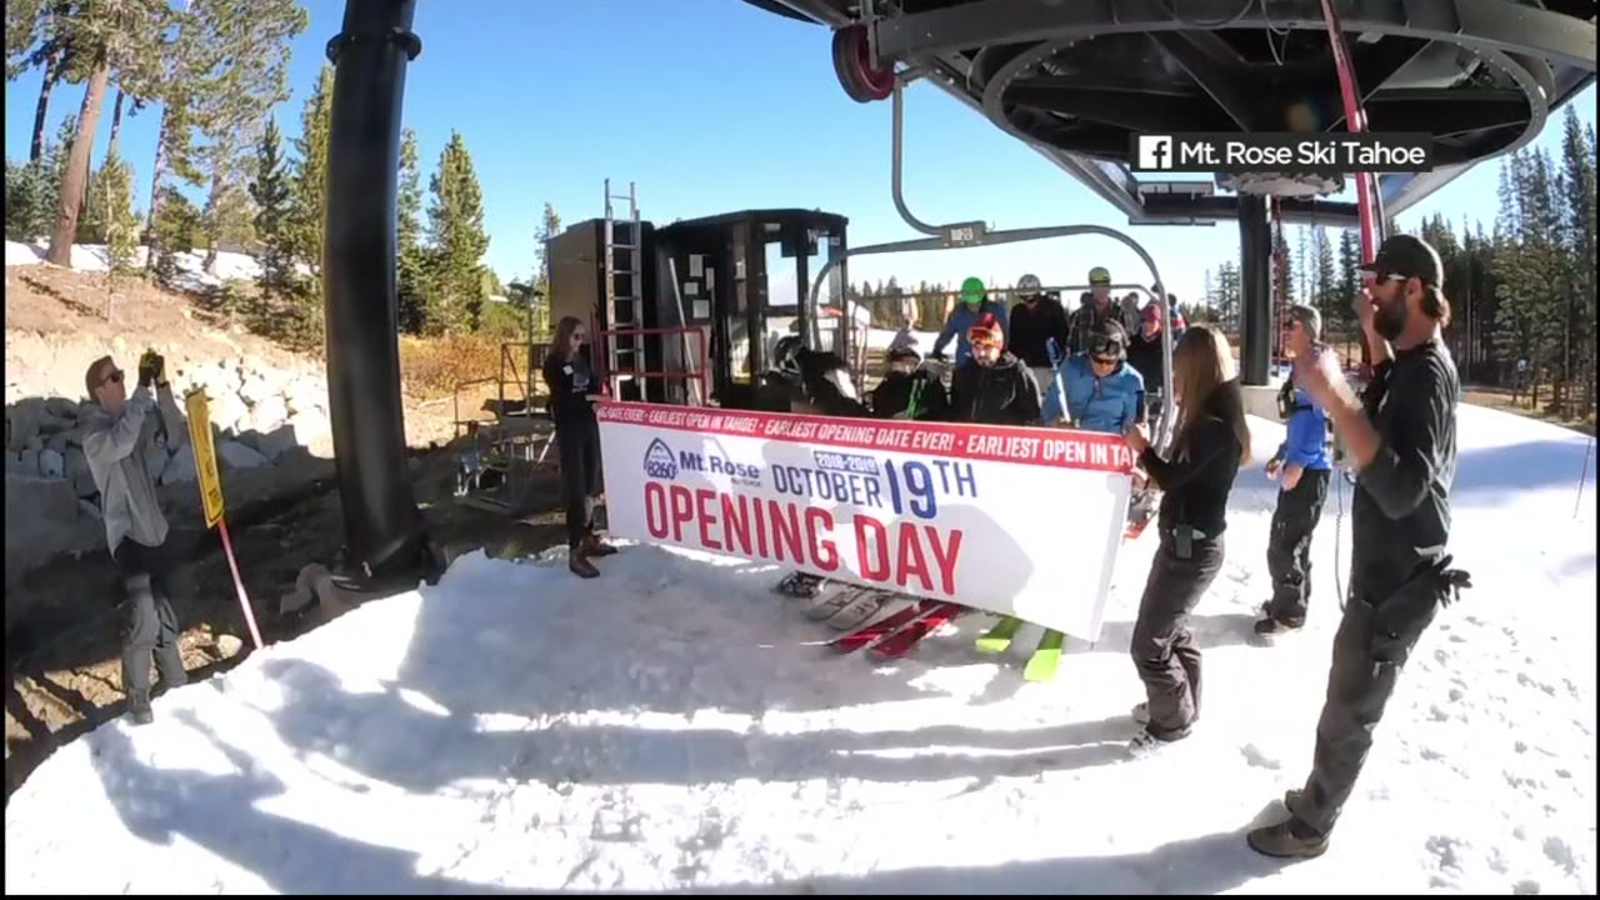 Here's when every Lake Tahoe resort opens